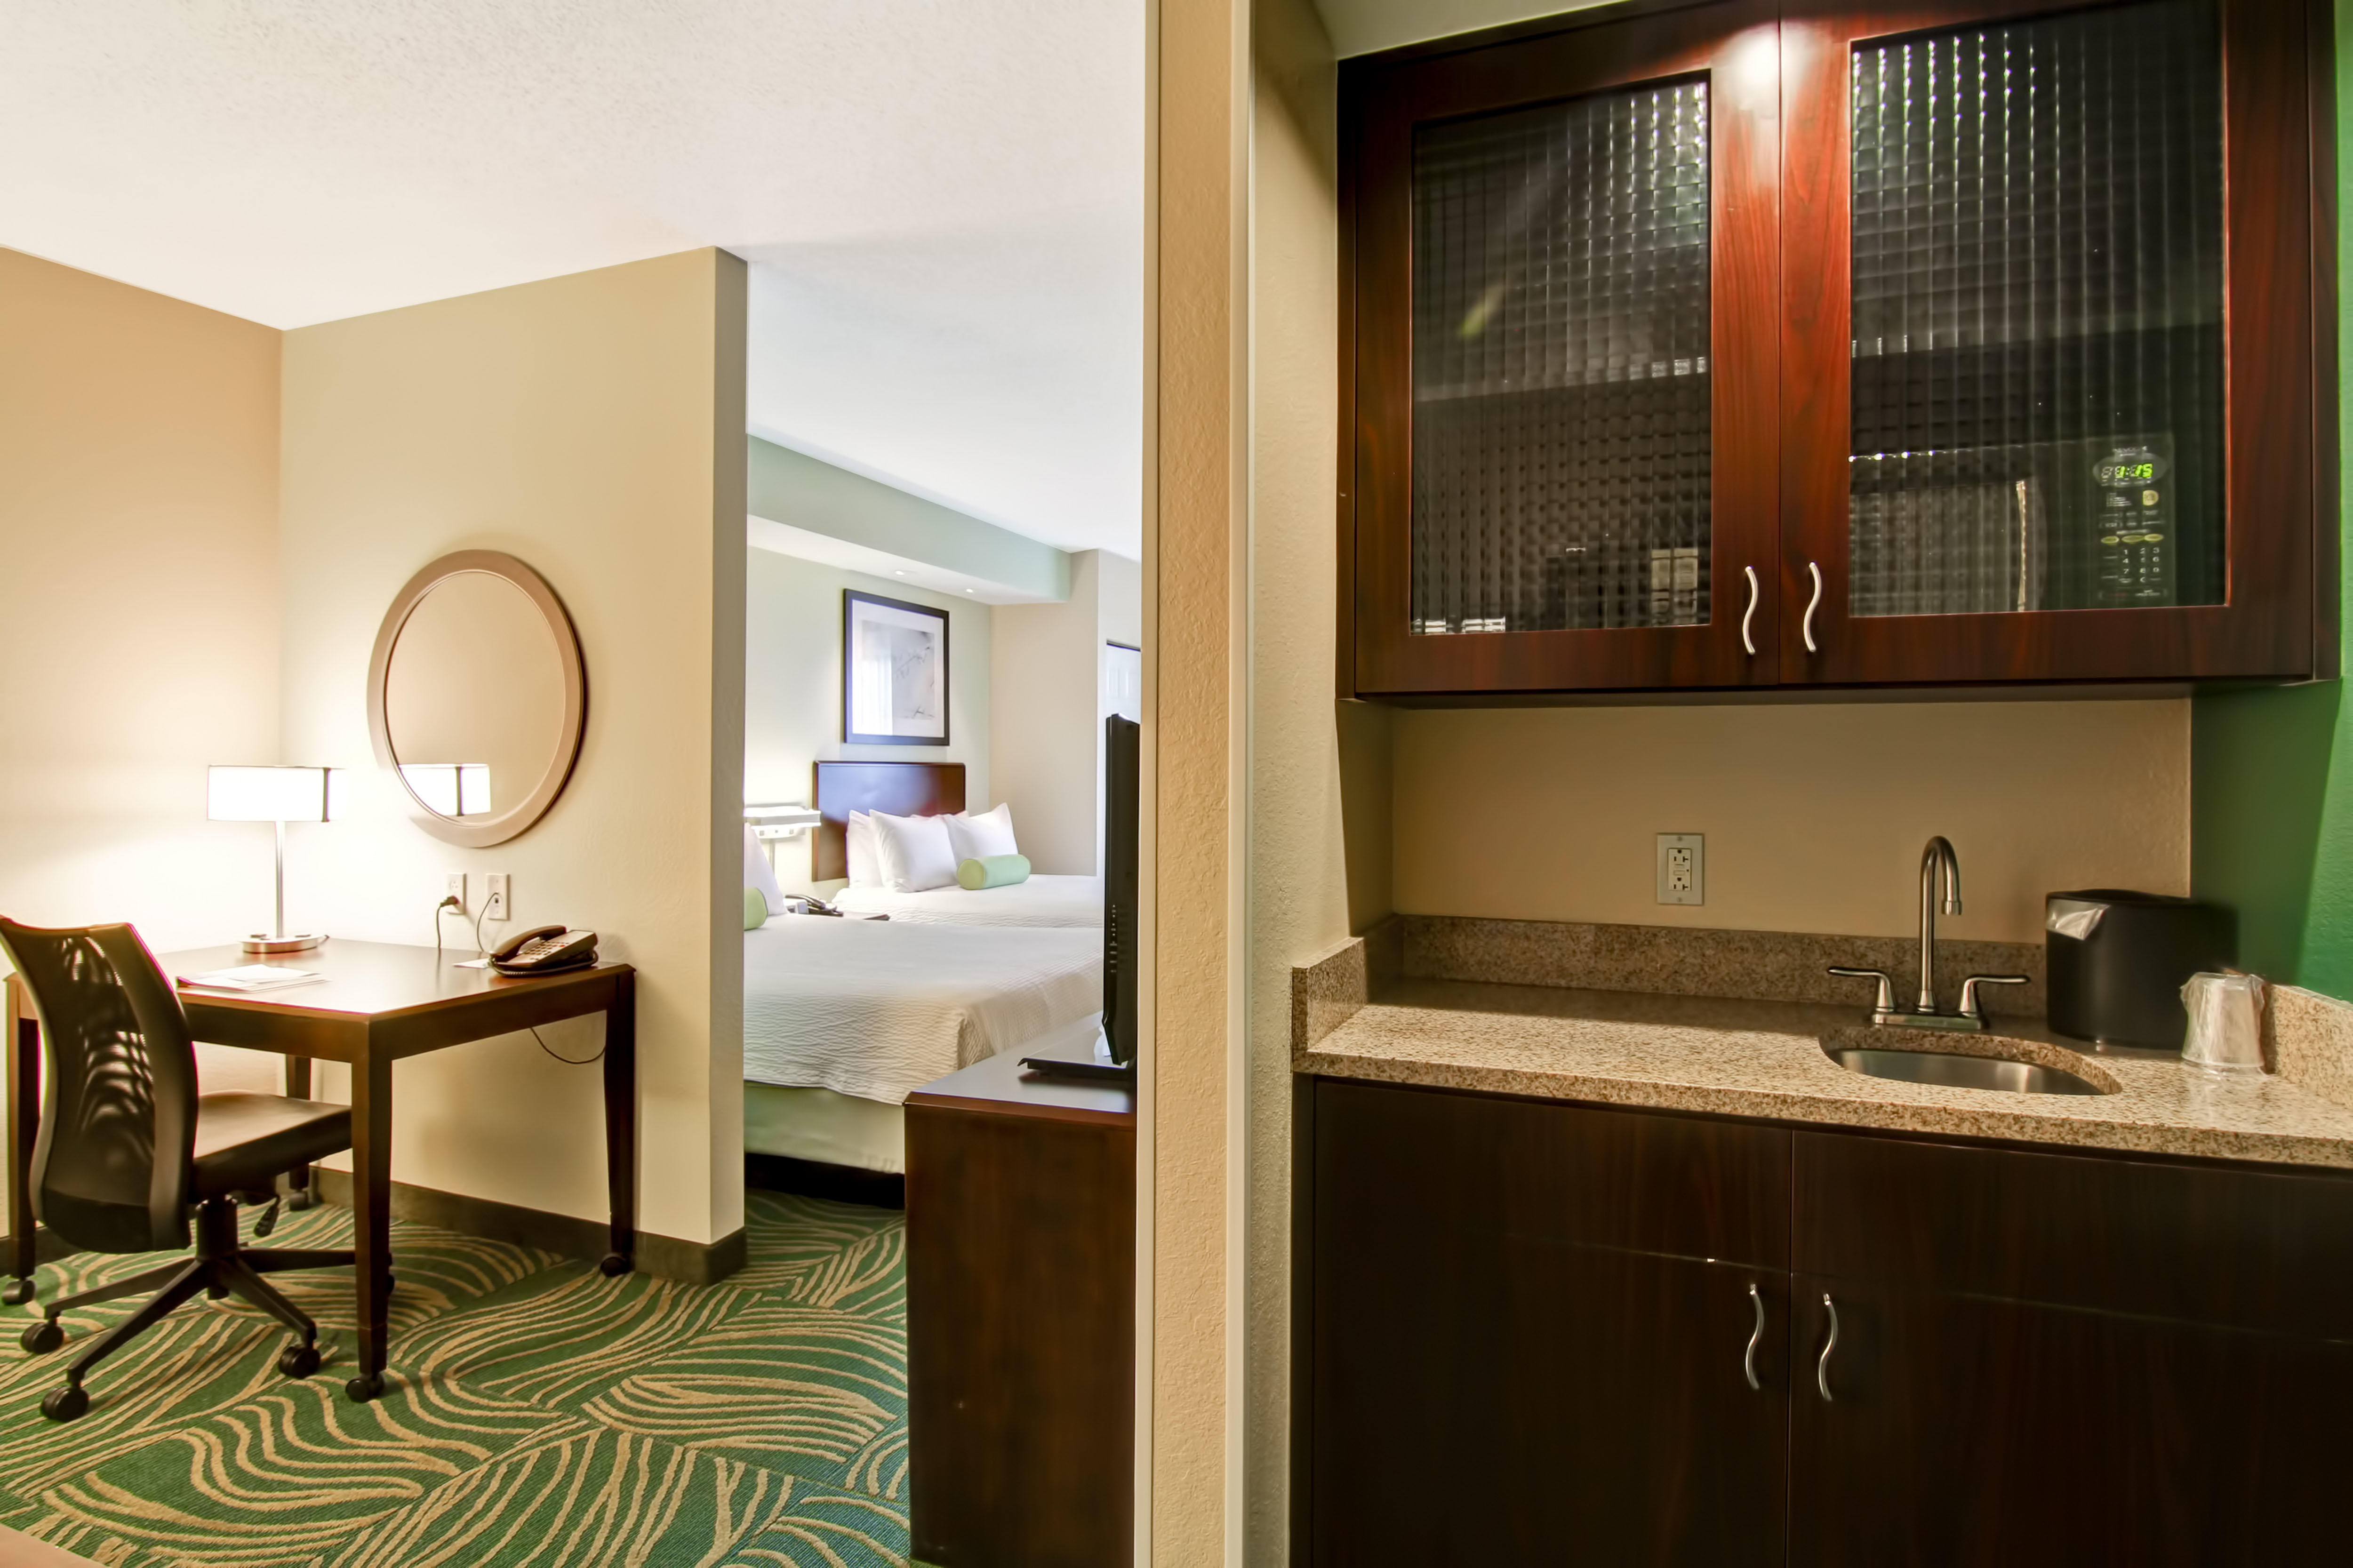 SpringHill Suites by Marriott Erie image 5